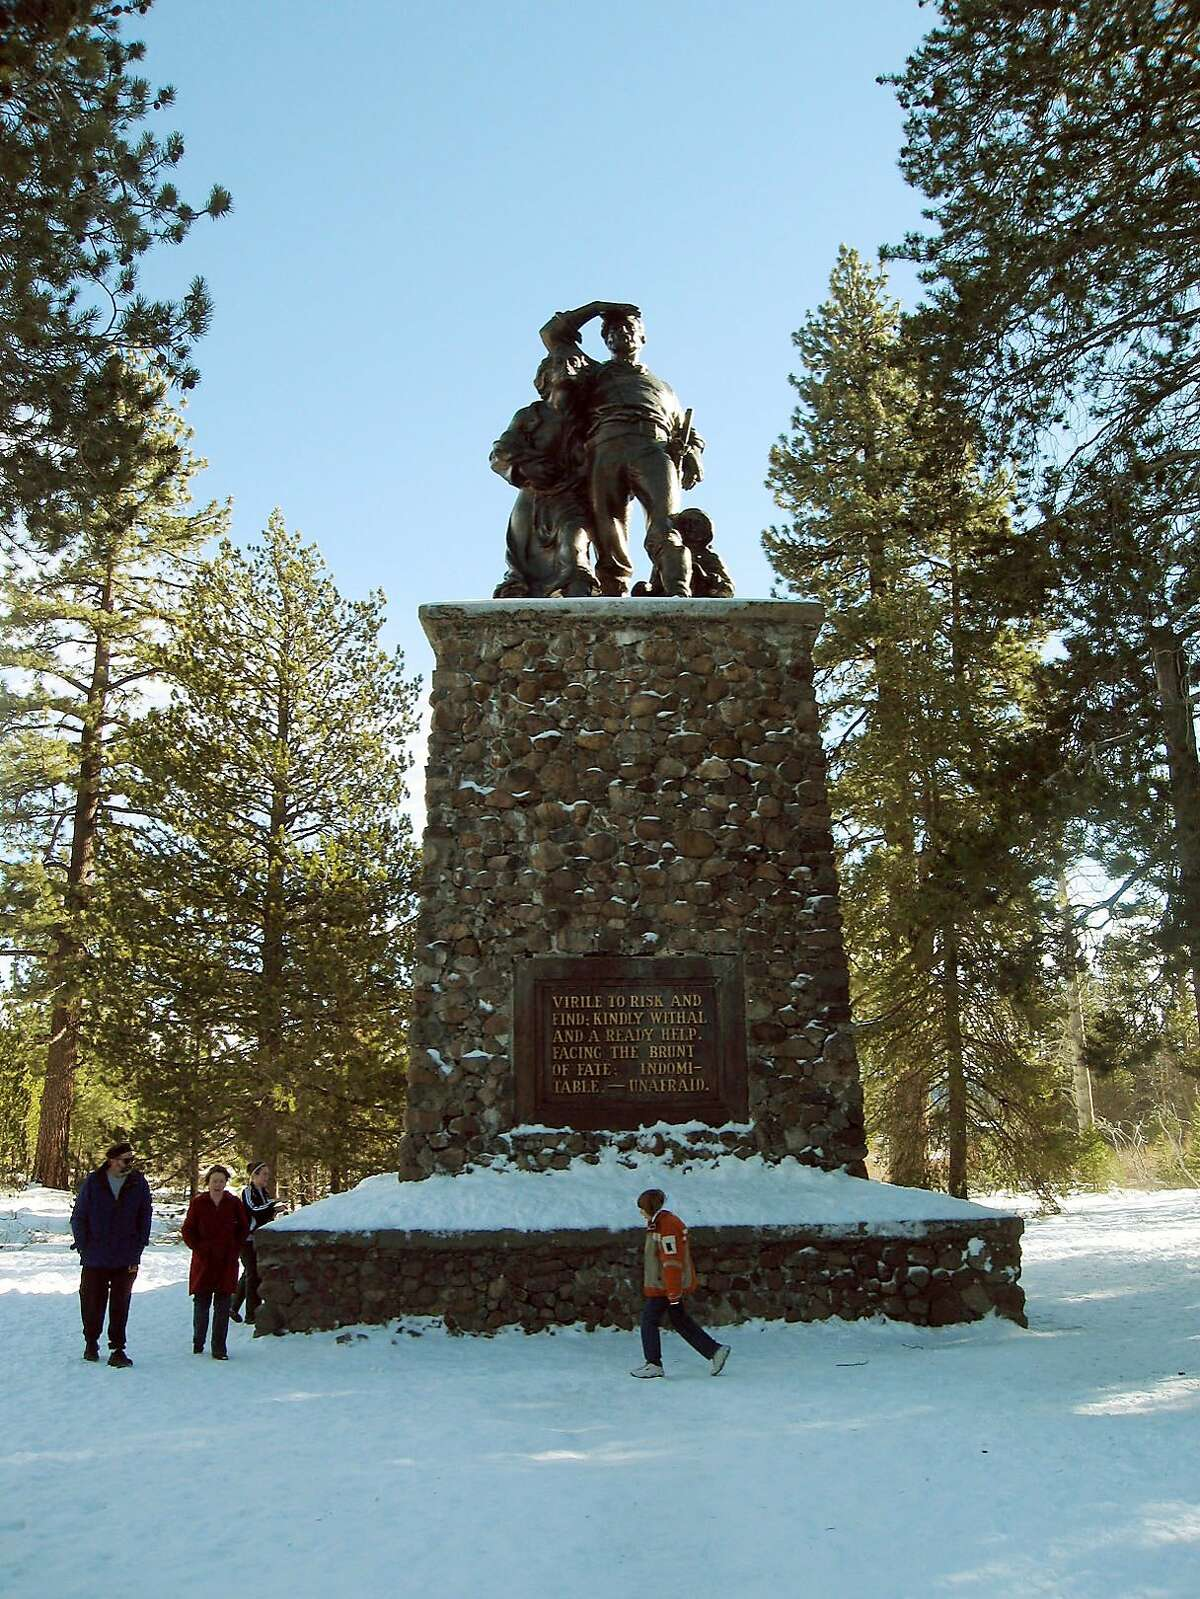 File - In this Jan. 2, 2007, file photo, visitors look at a monument depicting pioneers at Donner Memorial State Park, near Truckee, Calif. California parks officials say Gov. Jerry Brown's new budget proposal would make it possible to nearly double the operating hours planned at a new visitor's center and museum at Donner Memorial State Park north of Lake Tahoe. The center is scheduled to open in late spring 2015 along U.S. Interstate 80 near Truckee. (AP Photo/San Francisco Chronicle, John Flinn, File) ORTHERN CALIFORNIA OUT; MANDATORY CREDIT PHOTOG & CHRONICLE; MAGS OUT; NO SALES